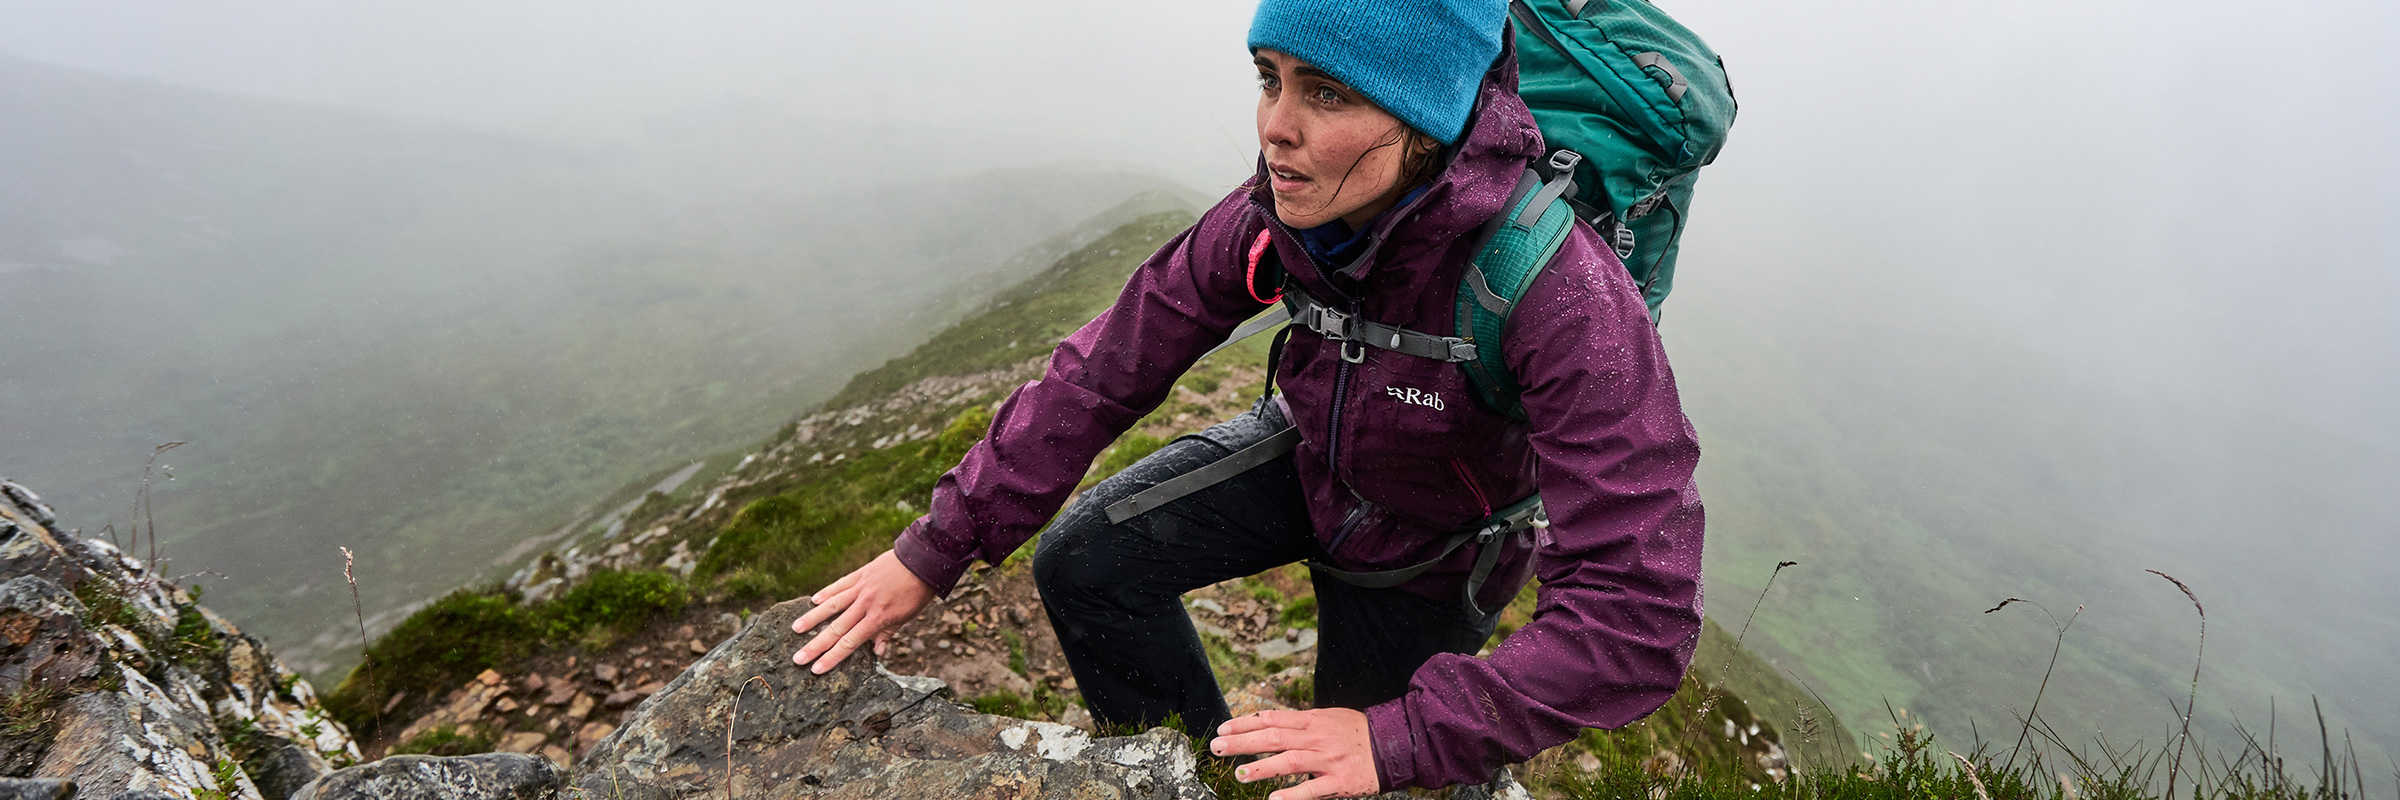 In The Mountains With Rab: Technical Clothing For Extreme Conditions